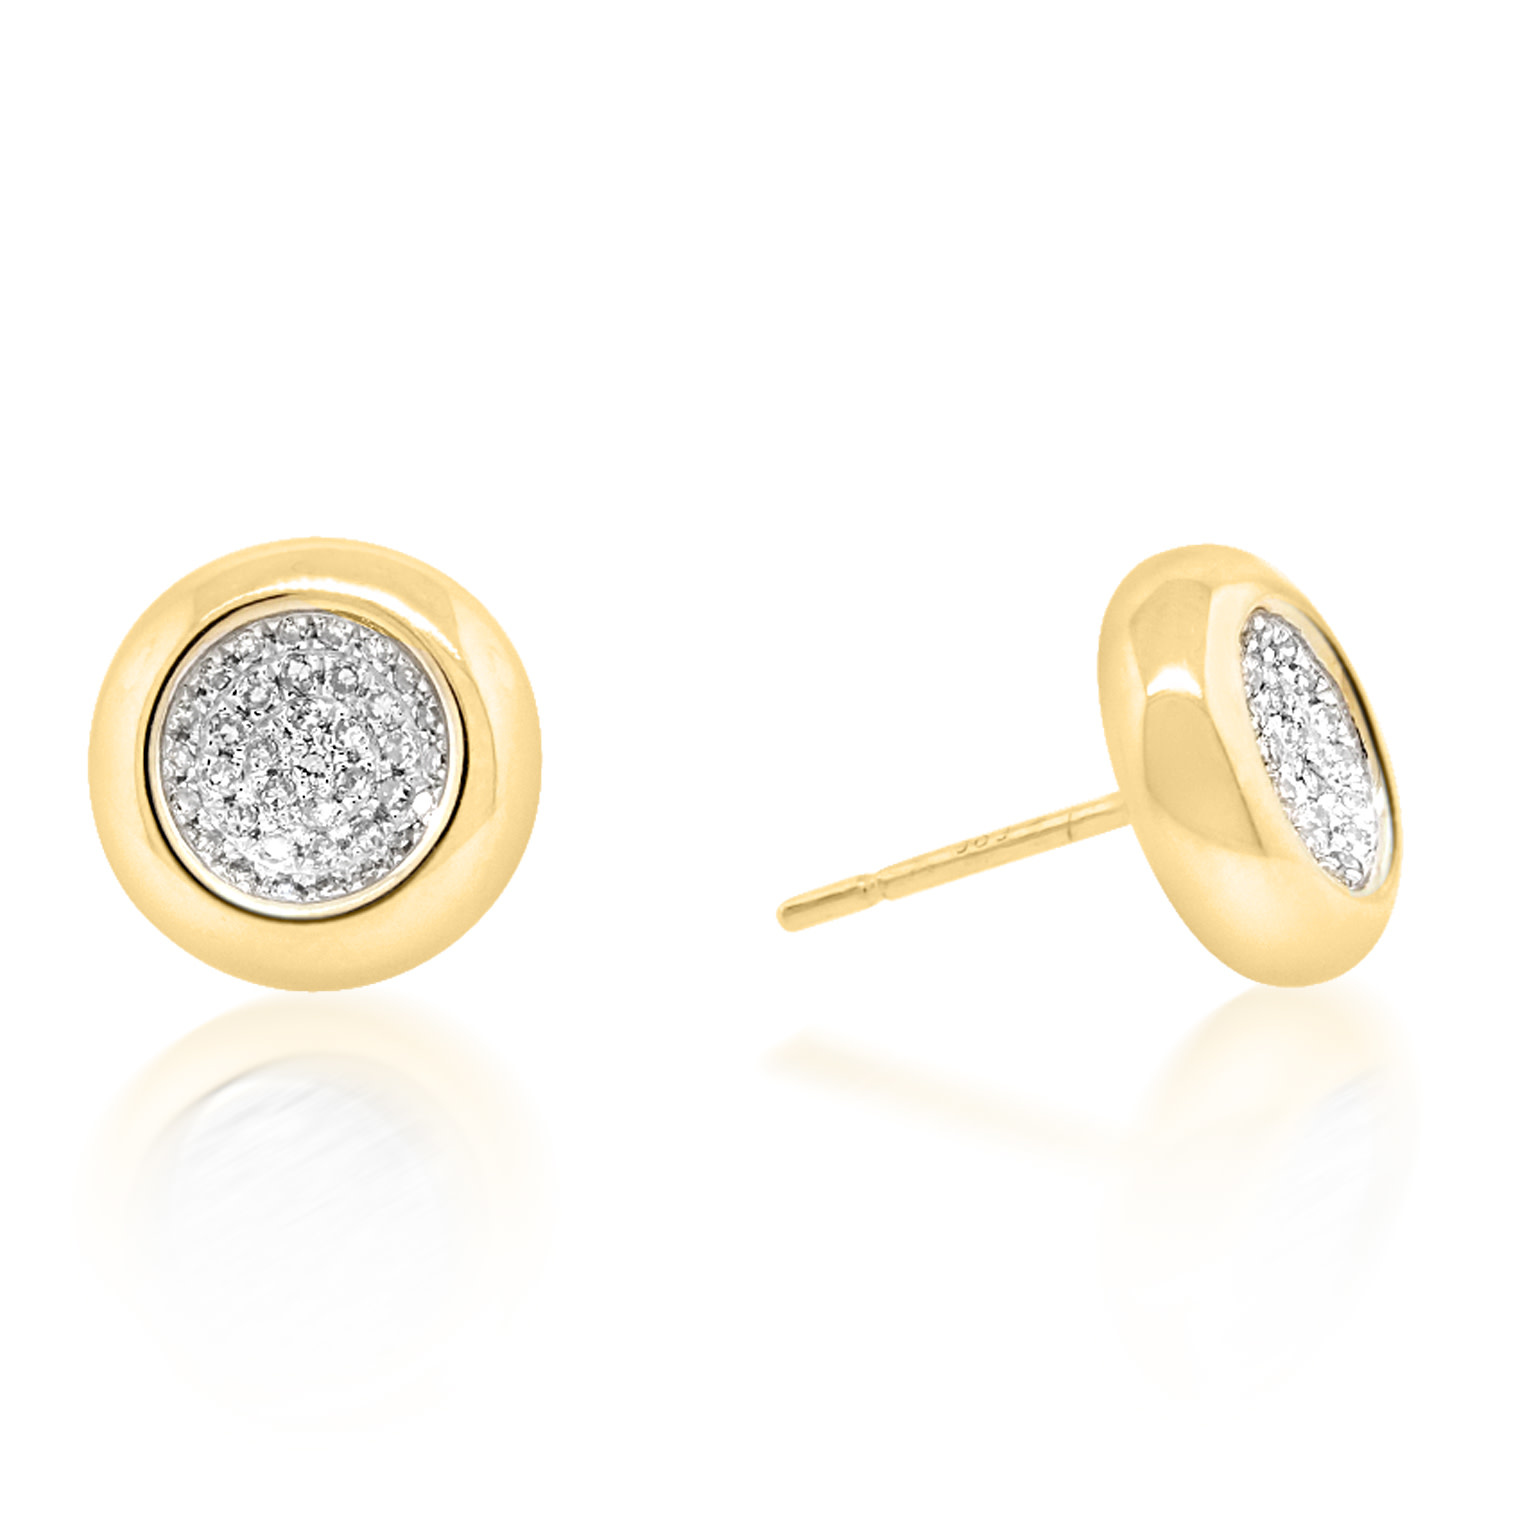 Trabert Goldsmiths Concave Pave Diamond Stud Earrings